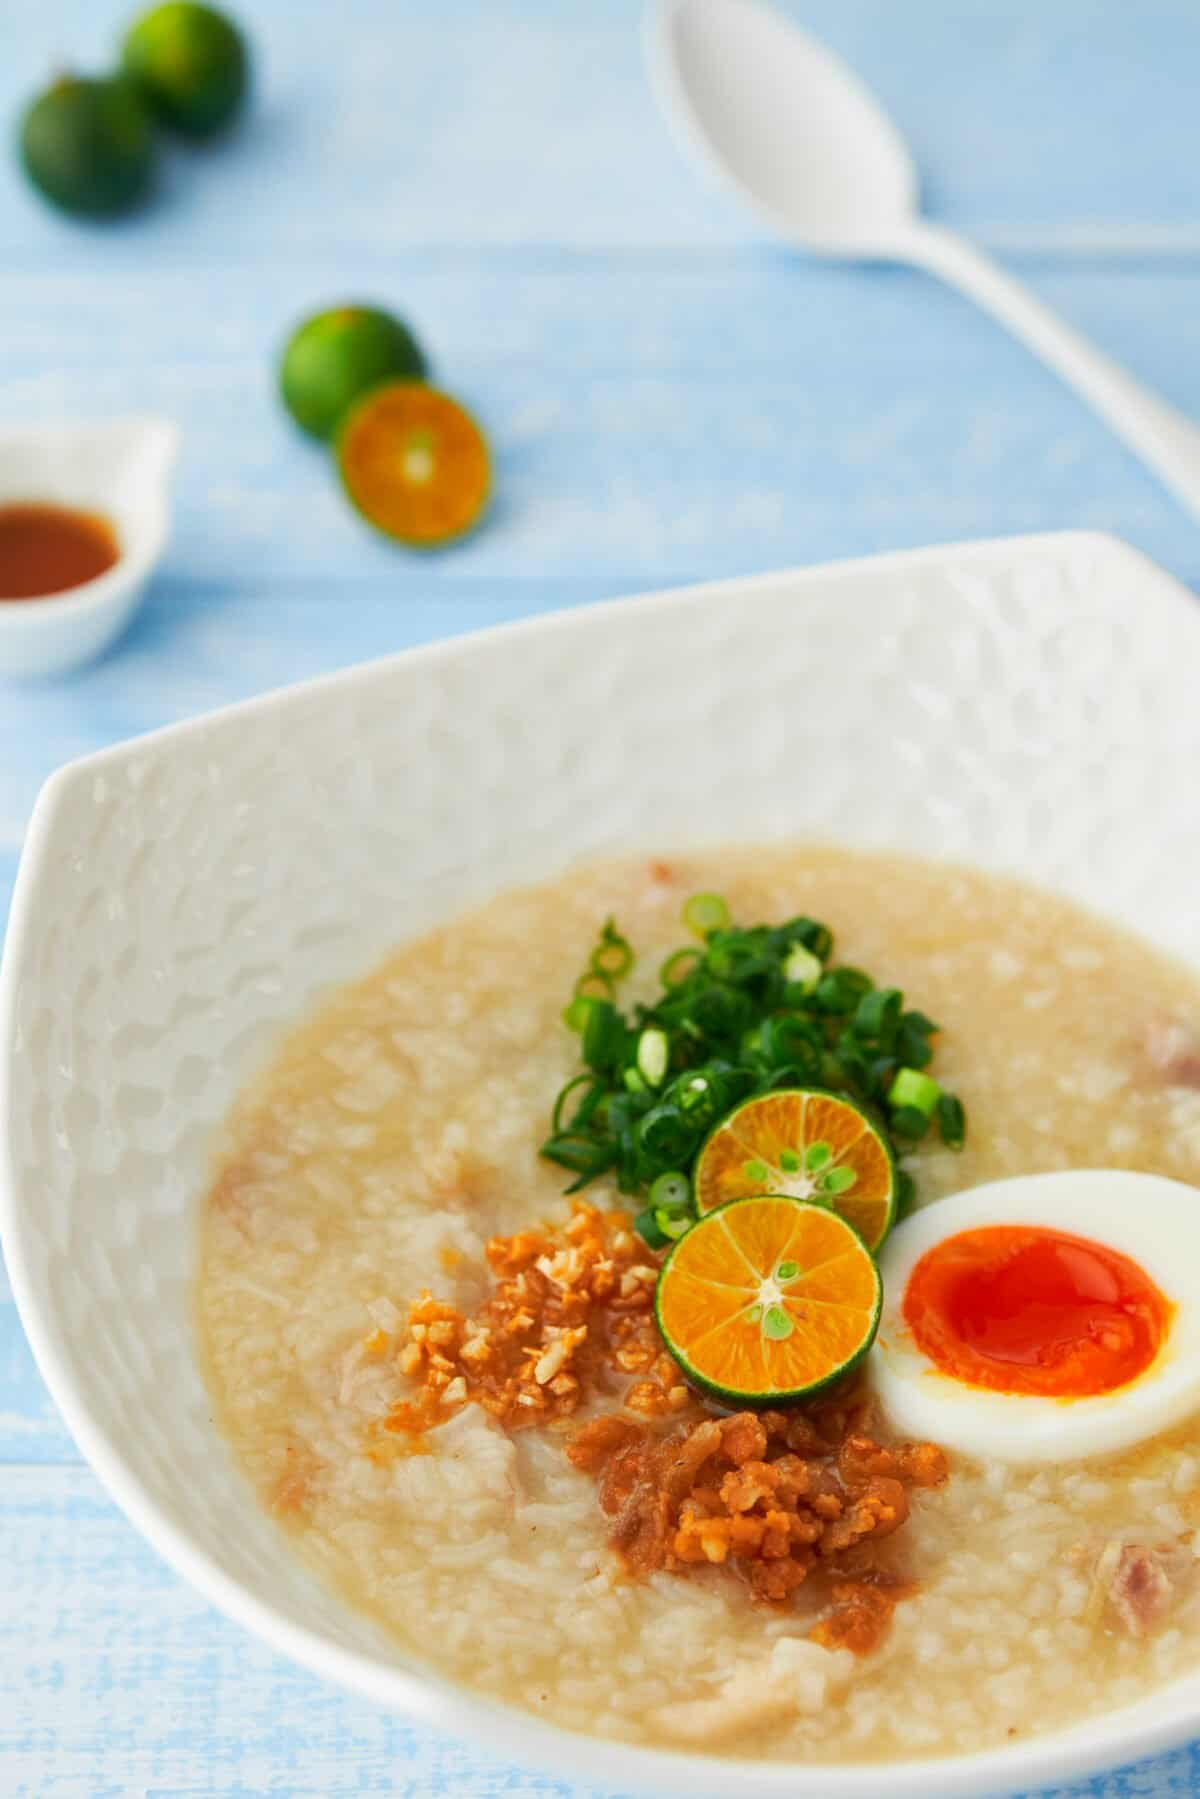 Arroz Caldo is a creamy chicken and ginger rice porridge with a mouthwatering array of contrasting condiments to go on top. The perfect way to add some warmth and sunshine to a wintery day.